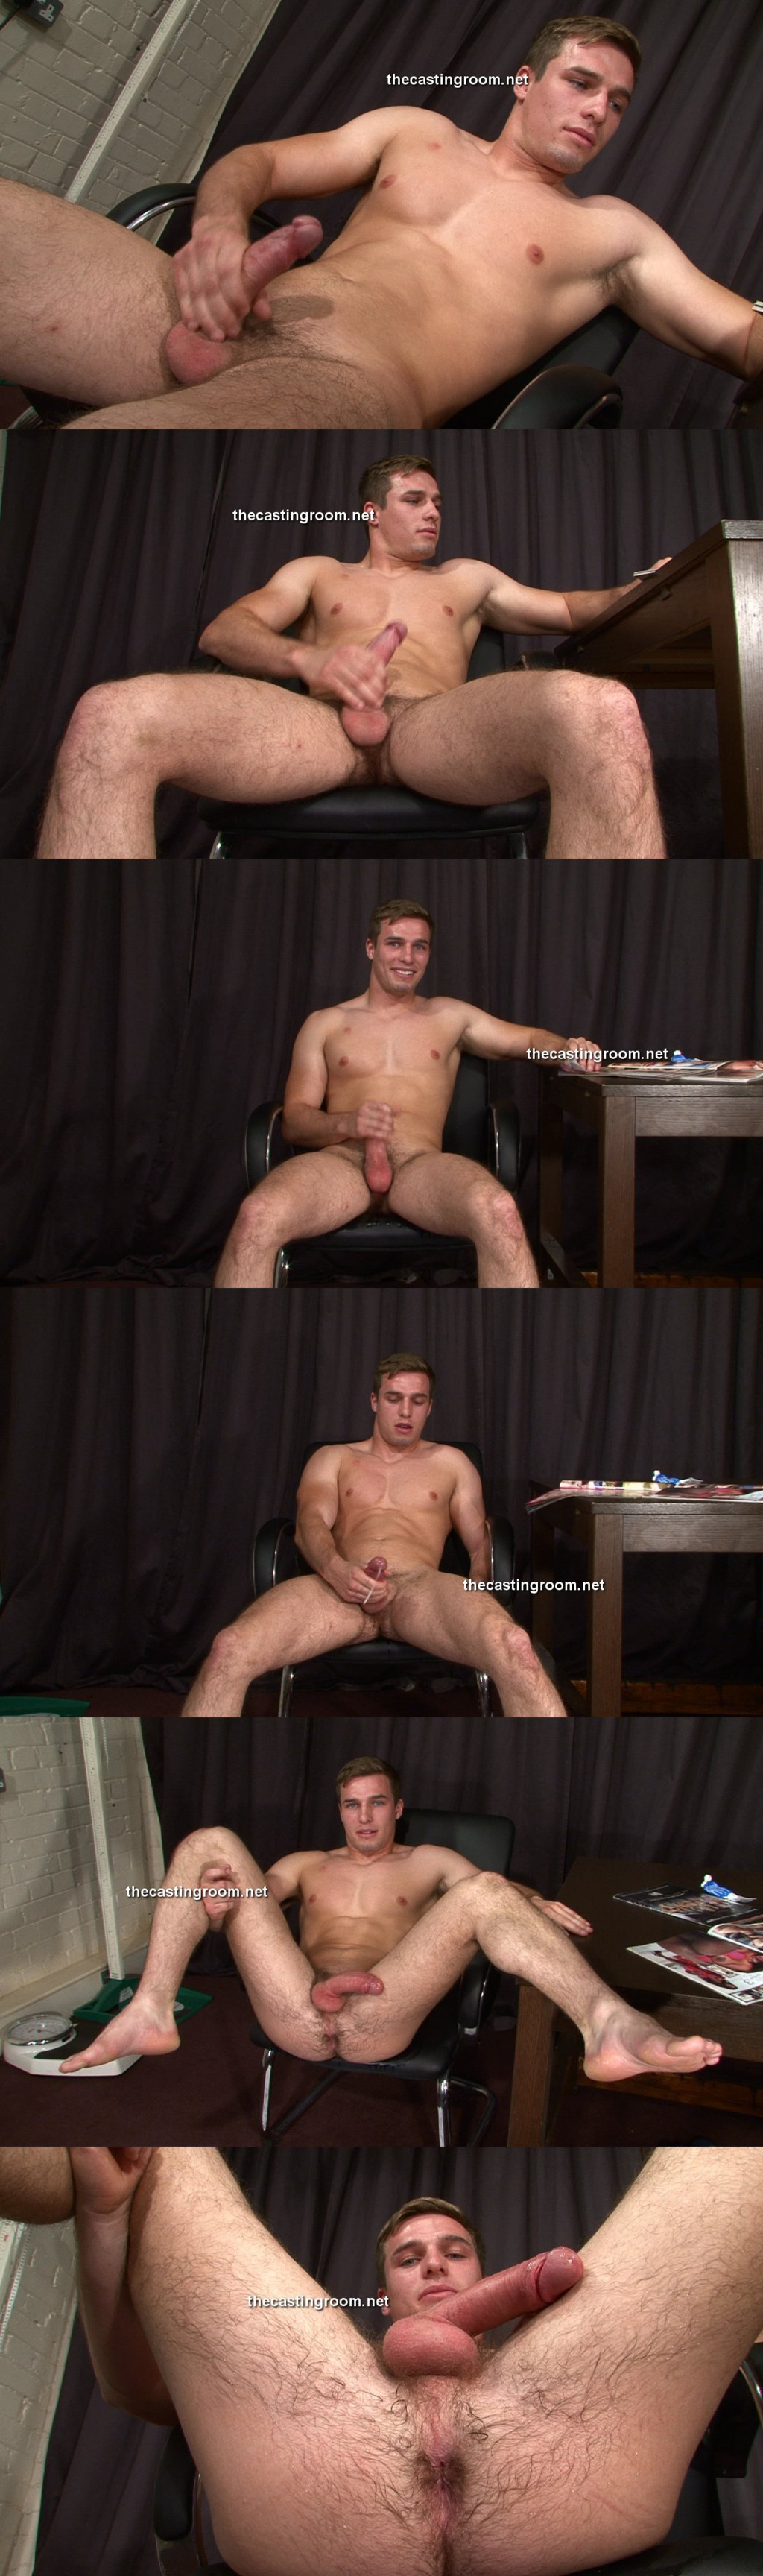 naked straight guy porn casting room